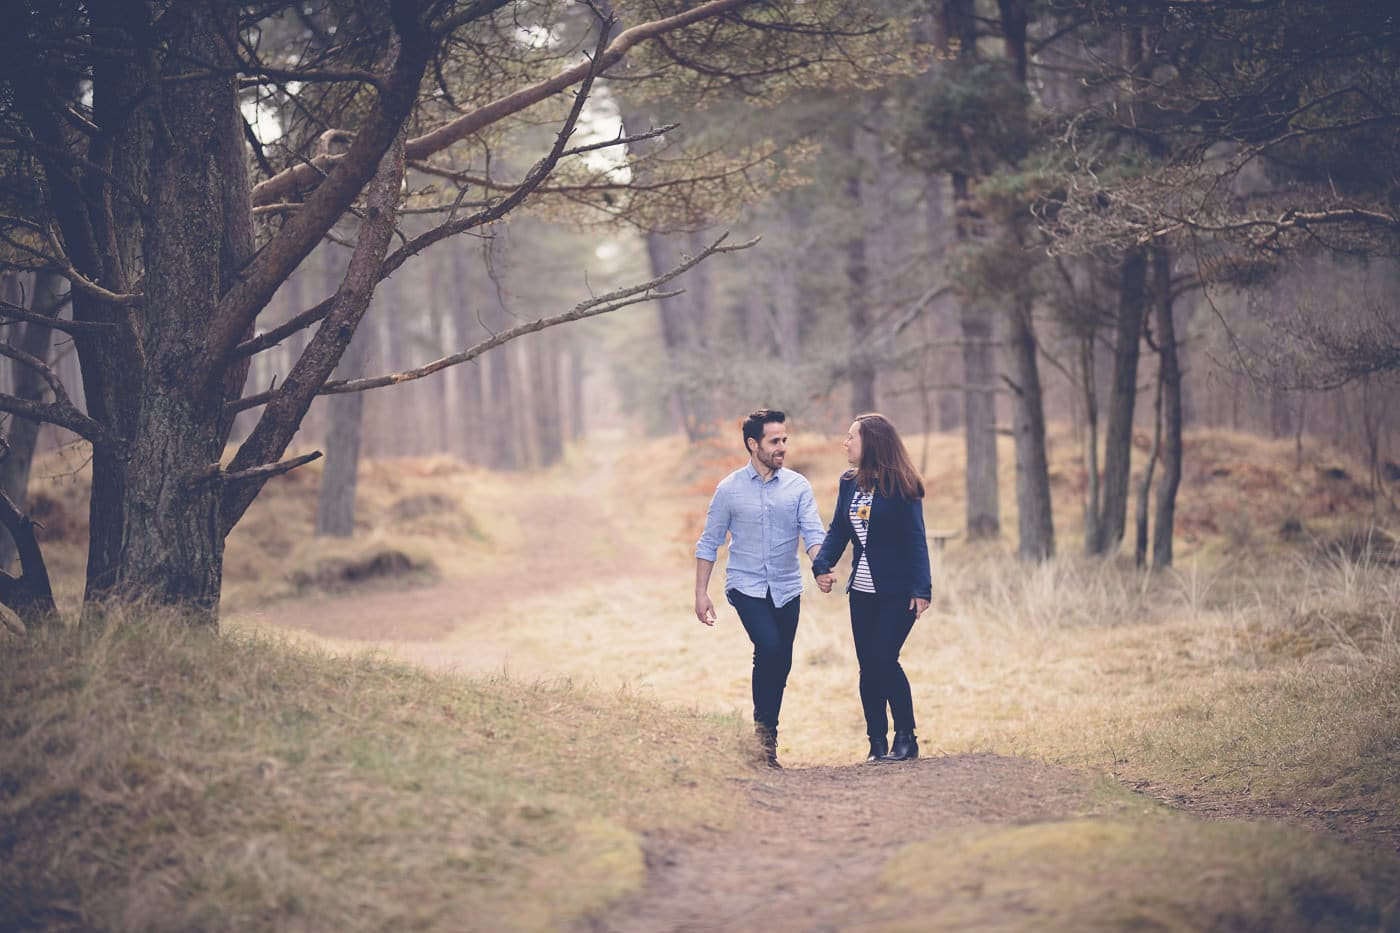 The couple is walking in the park